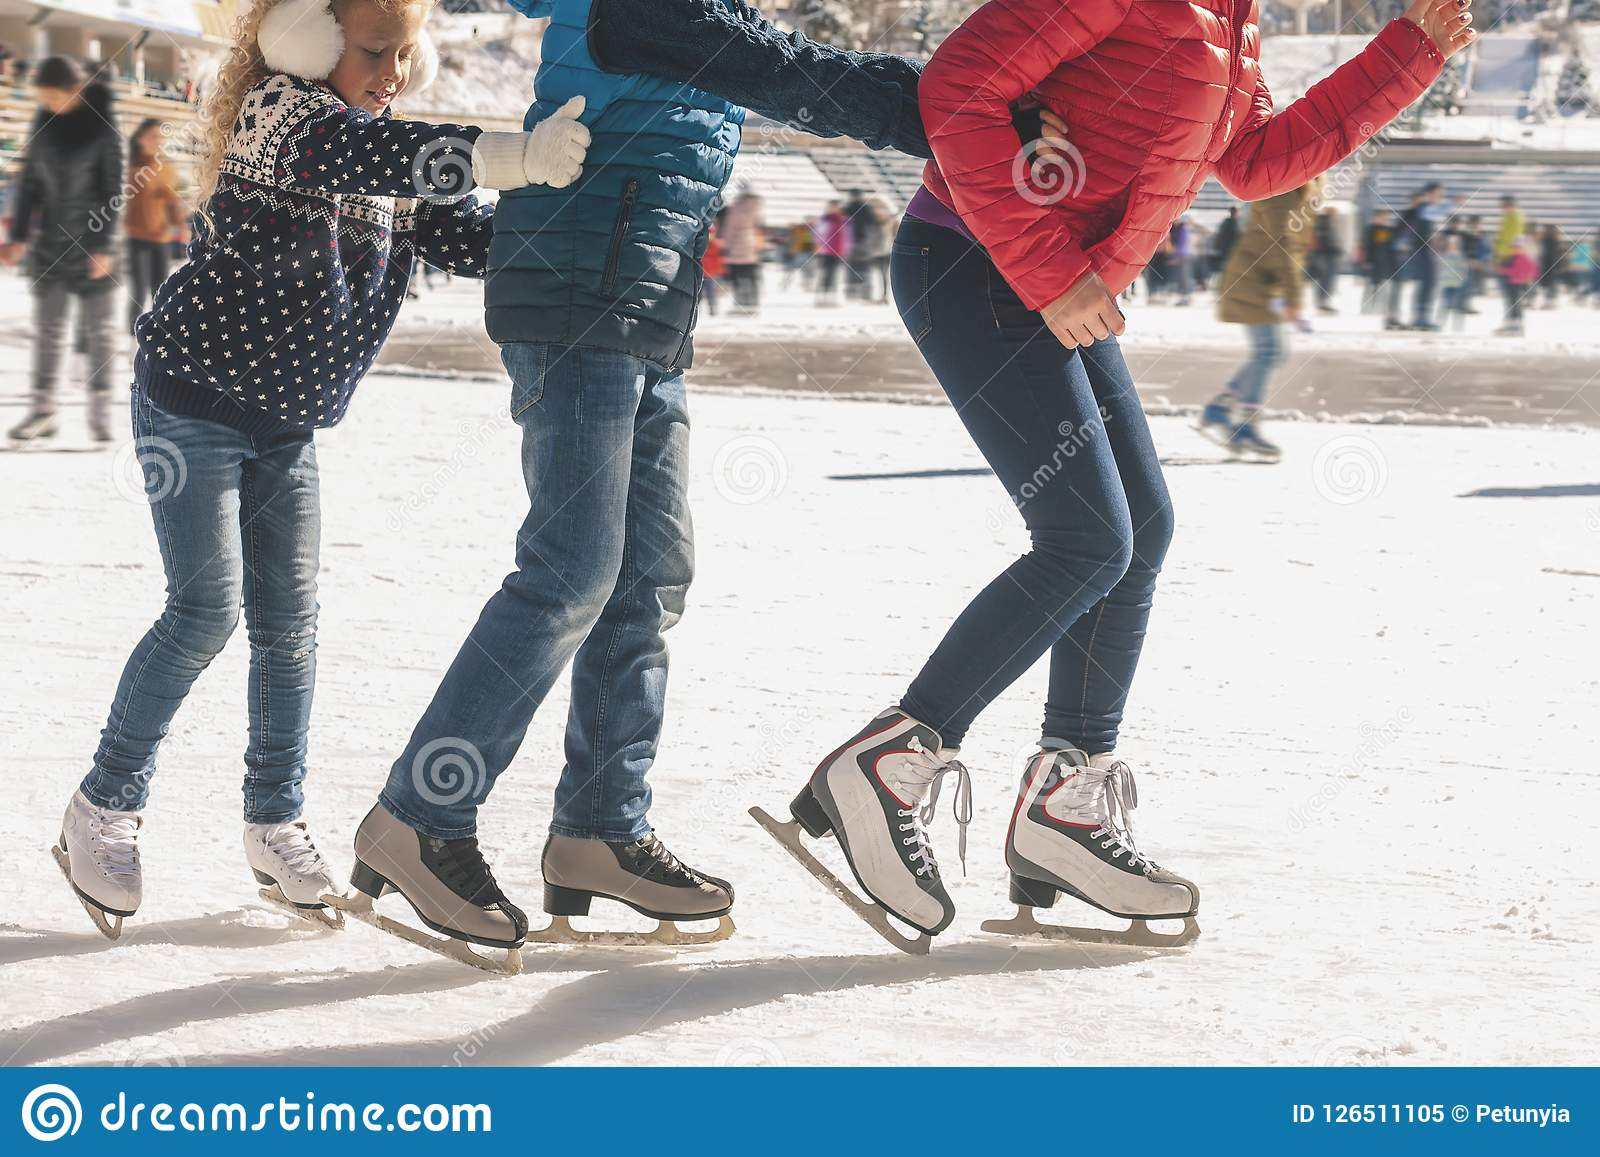 Happy family have outdoor activity, Christmas, outdoor ice skating rink